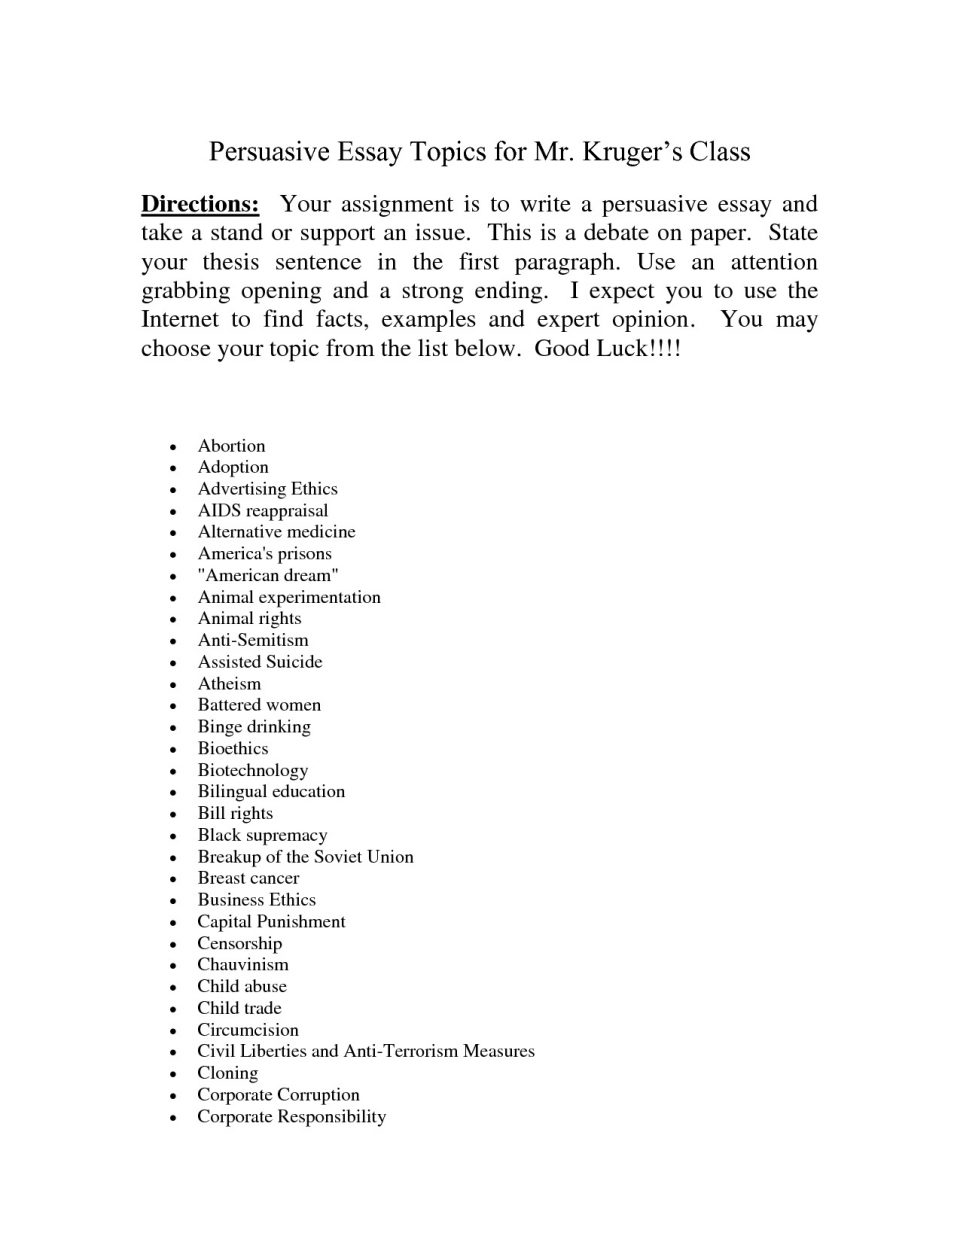 001 Research Paper Topics Topic For Essay Barca Fontanacountryinn Within Good Persuasive Narrative To Write Abo Easy About Personal Descriptive Informative Formidable 2017 College In Computer Science Full